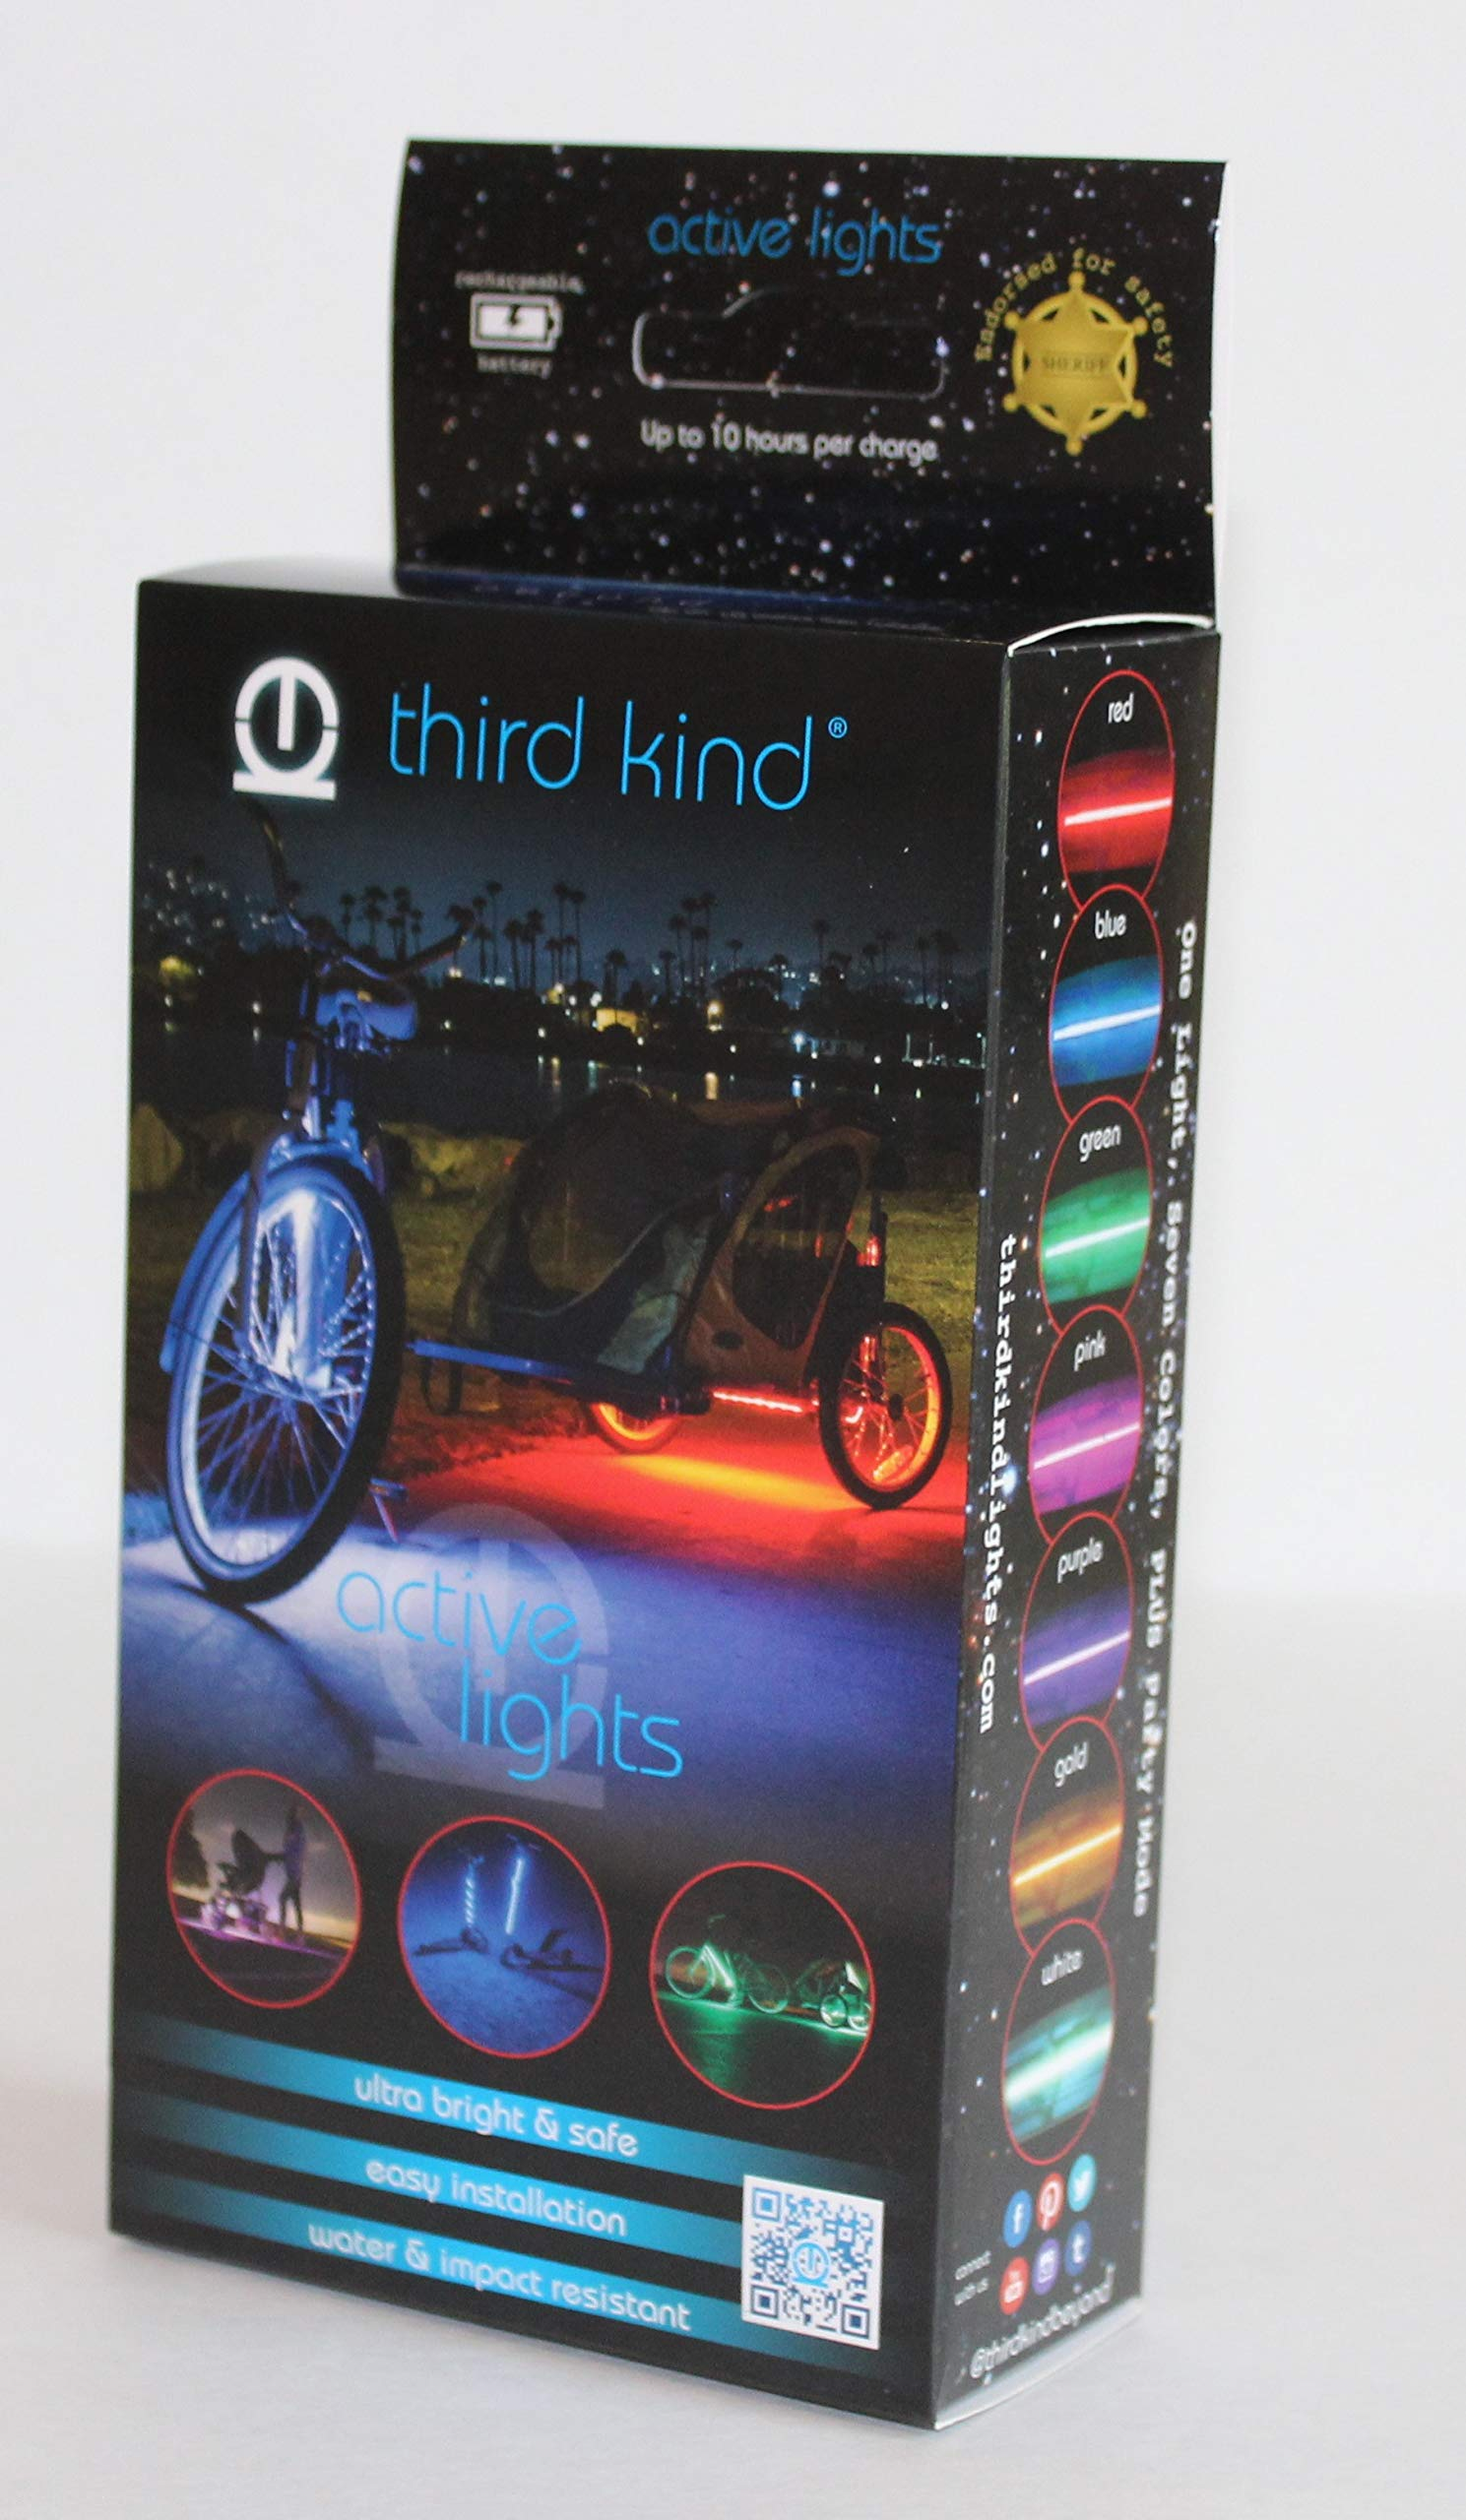 Third Kind Bicycle Lights. Safe, Fun and The only Lights endorsed by Police for Safety